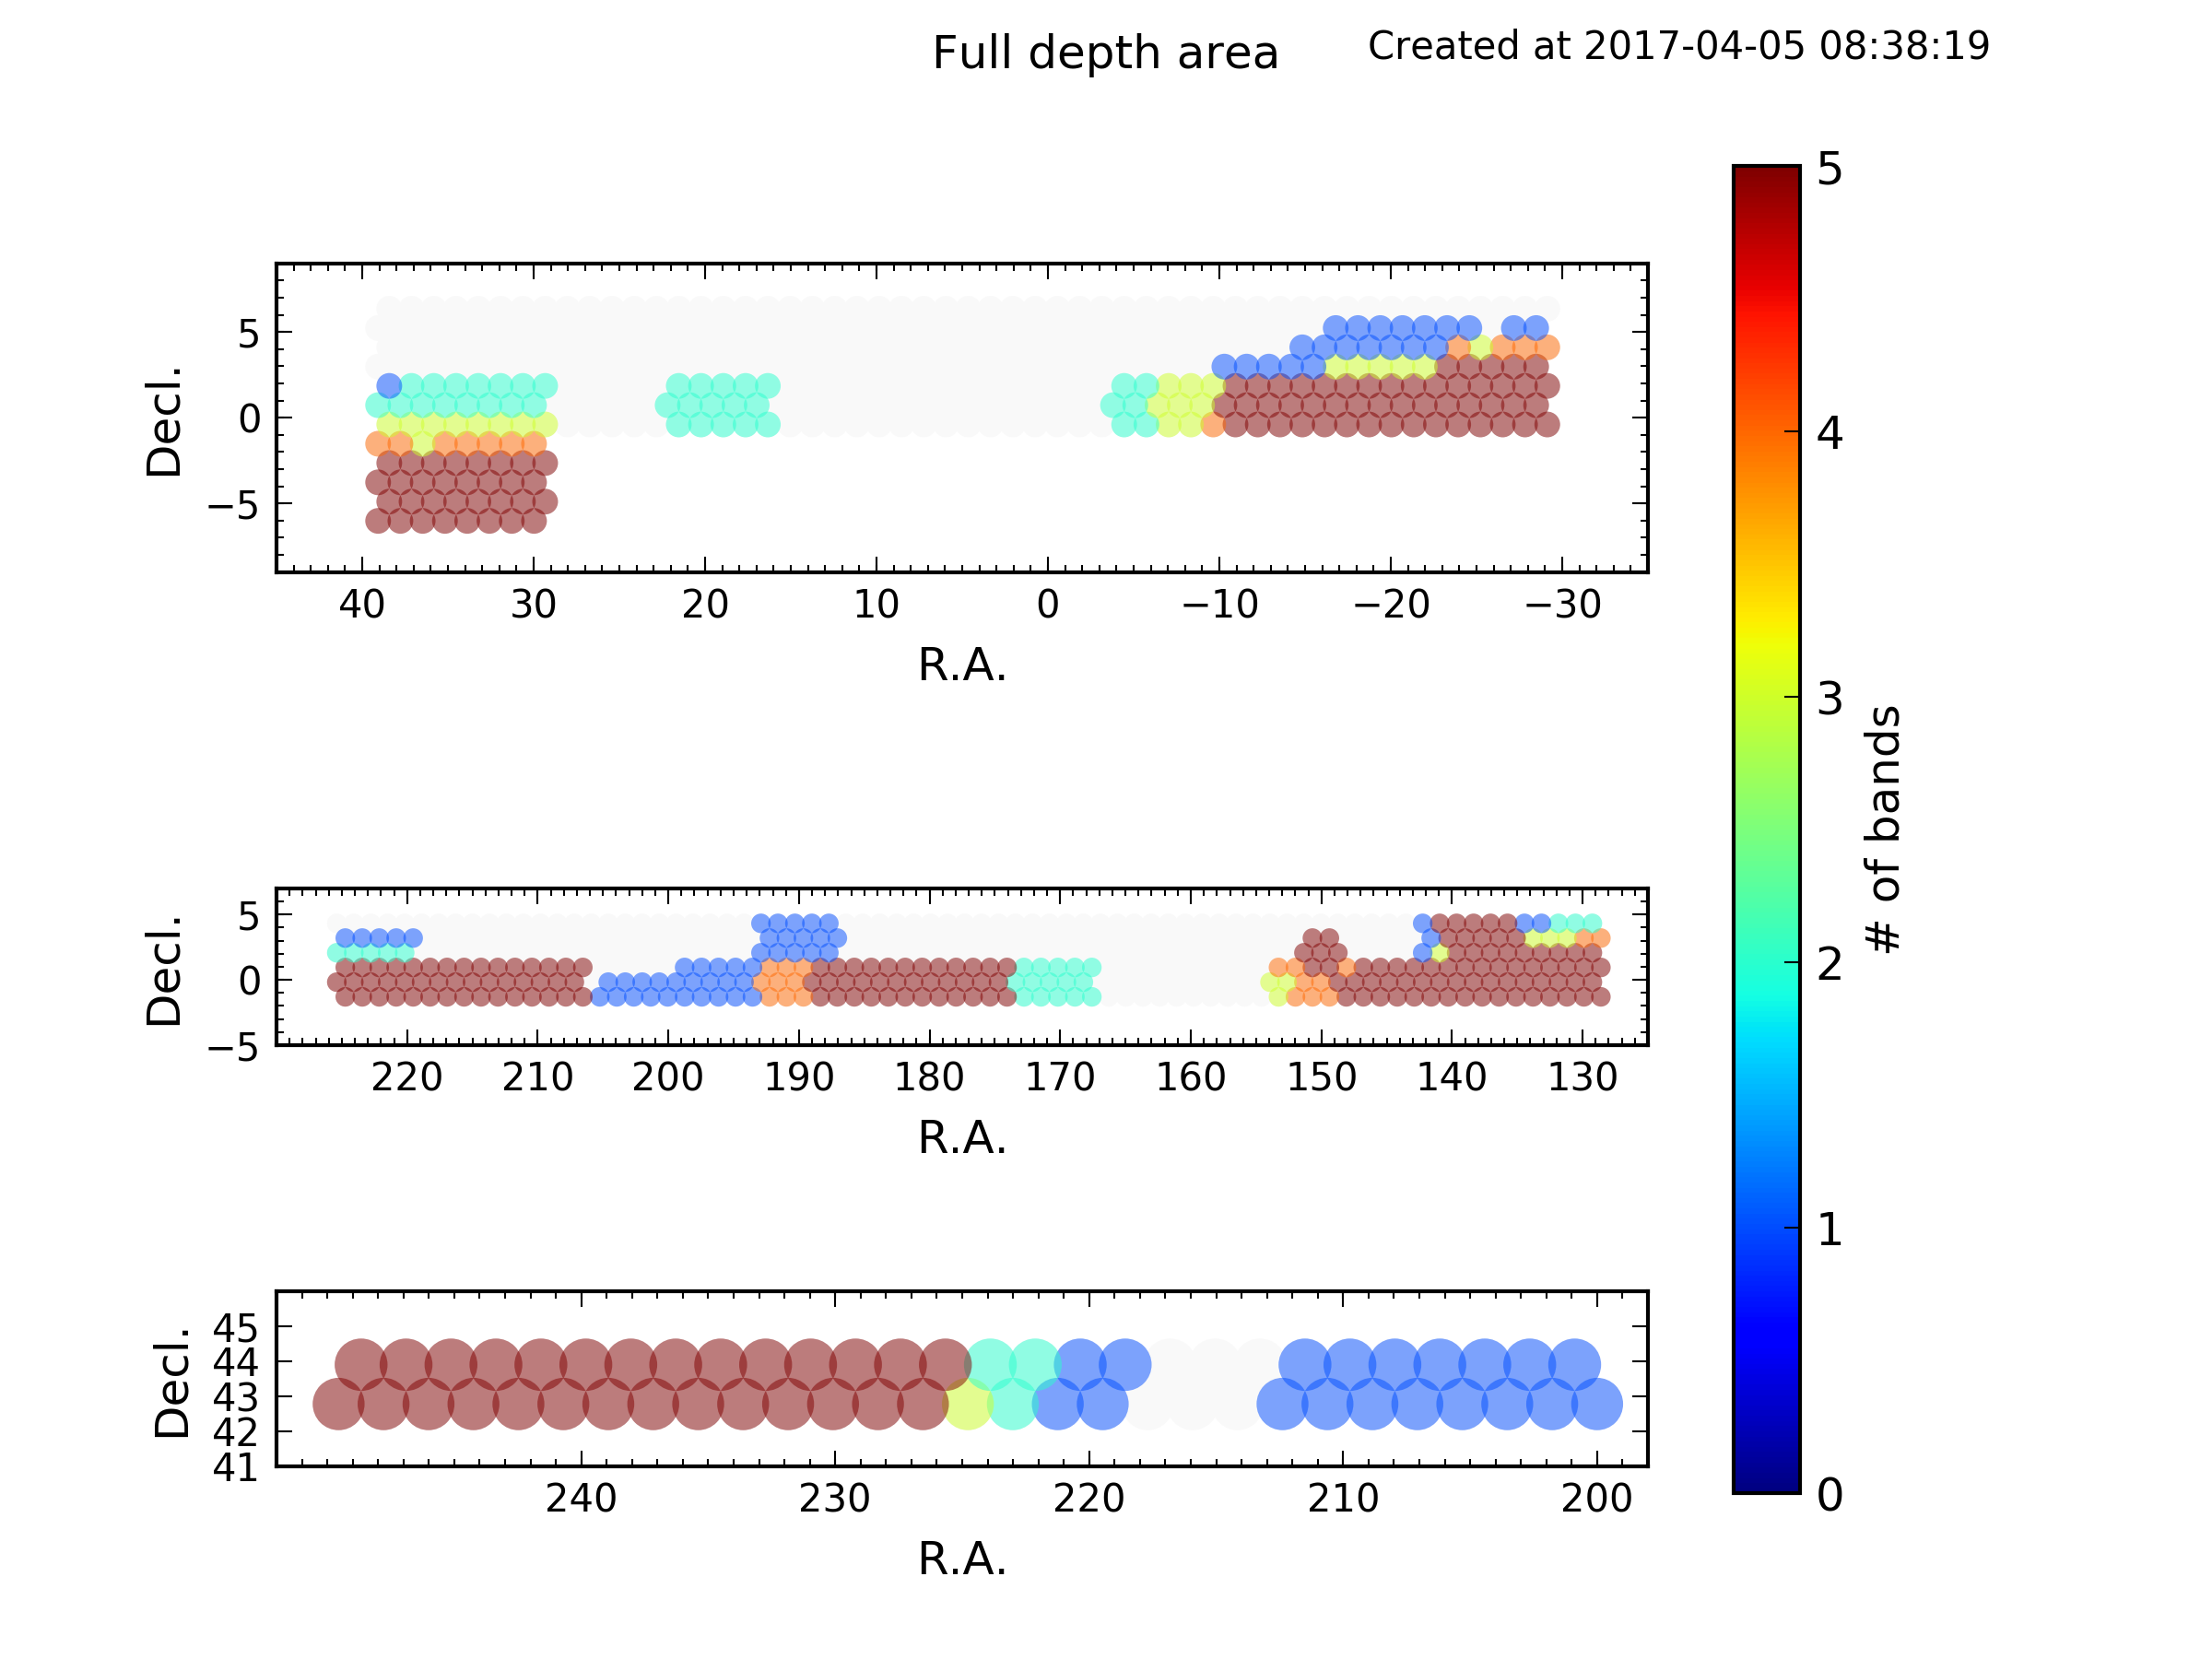 Area with the full-depth data. The colors indicate the number of filters with the full-depth exposures.